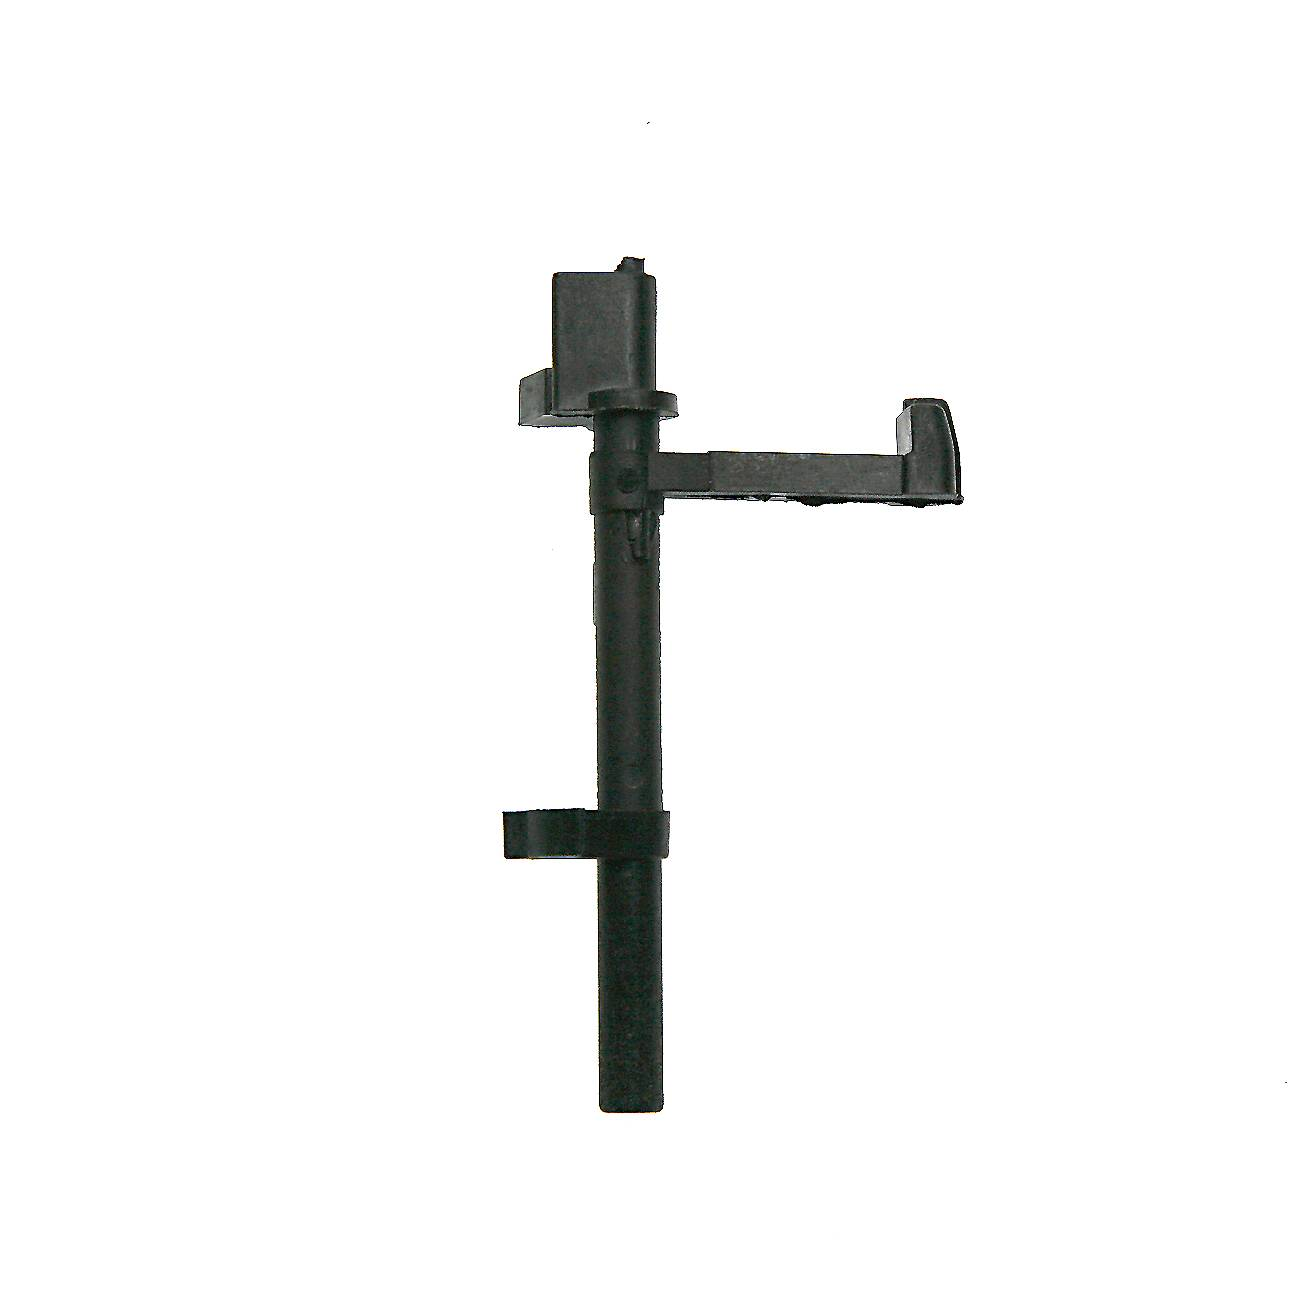 New switch choke shaft for stihl 017 018 ms170 ms180 11301820900 new switch choke shaft for stihl 017 018 ms170 ms180 11301820900 oem in chainsaws from tools on aliexpress alibaba group biocorpaavc Image collections